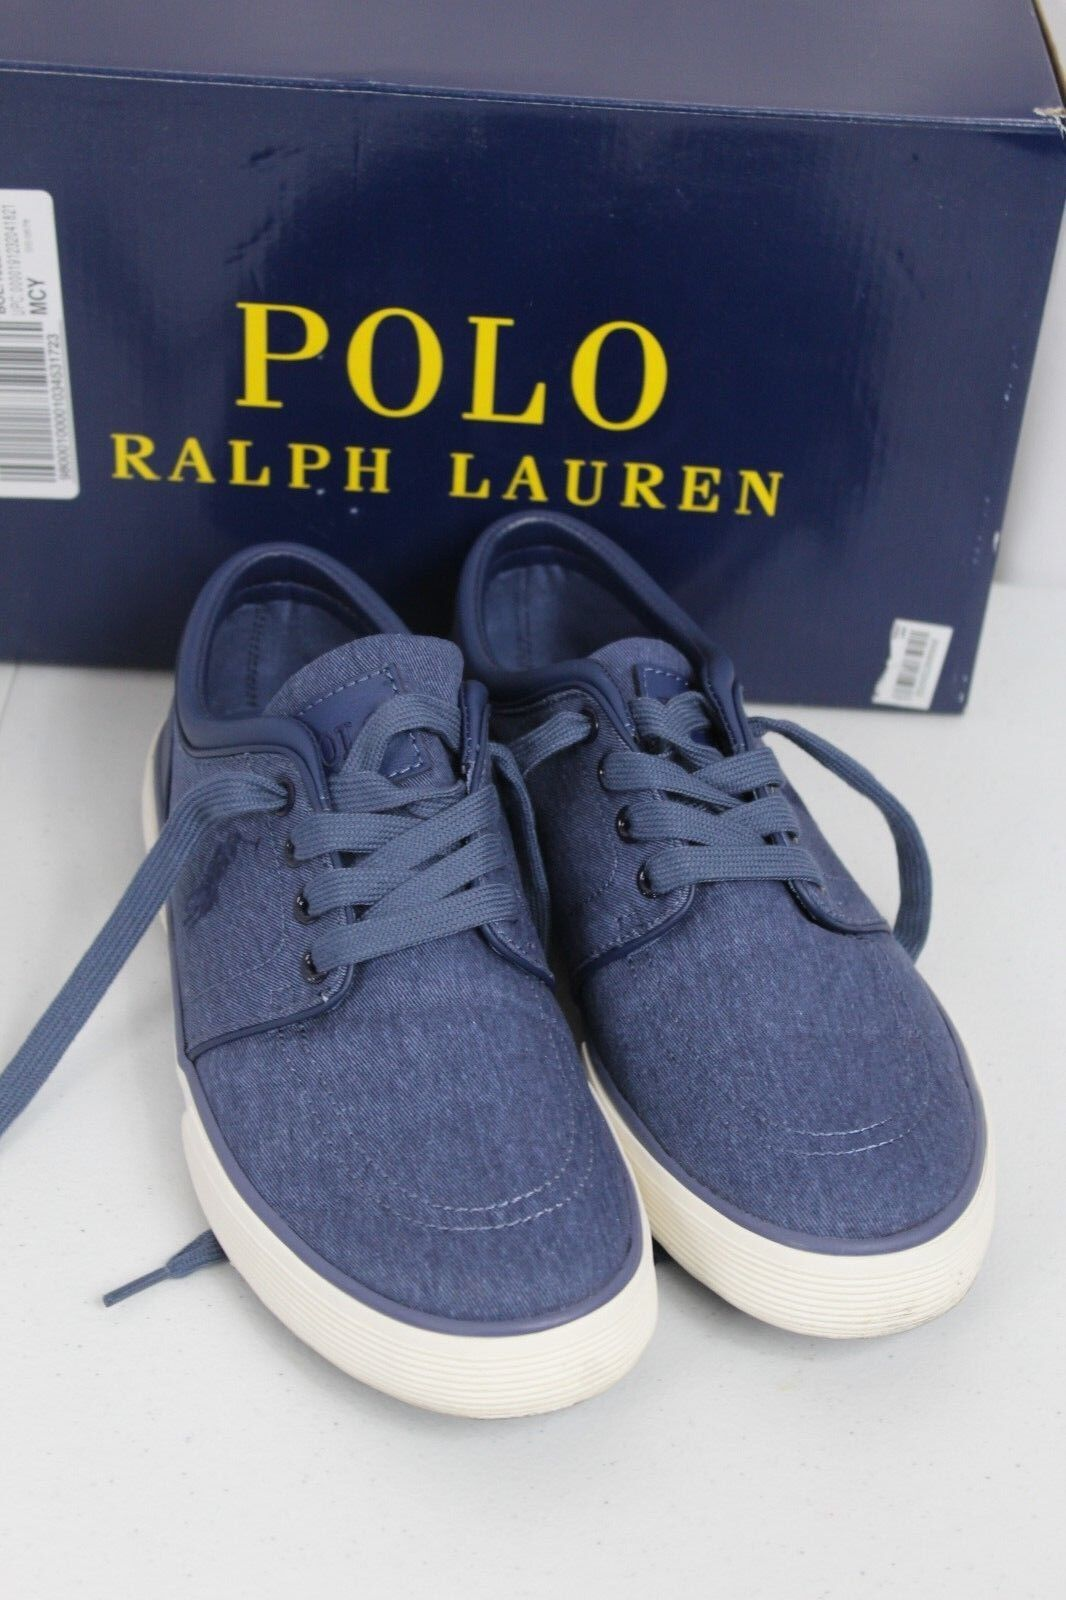 Polo Ralph Lauren US 9D Faxon Low Cut Sport bluee Canvas Fashion Sneakers shoes